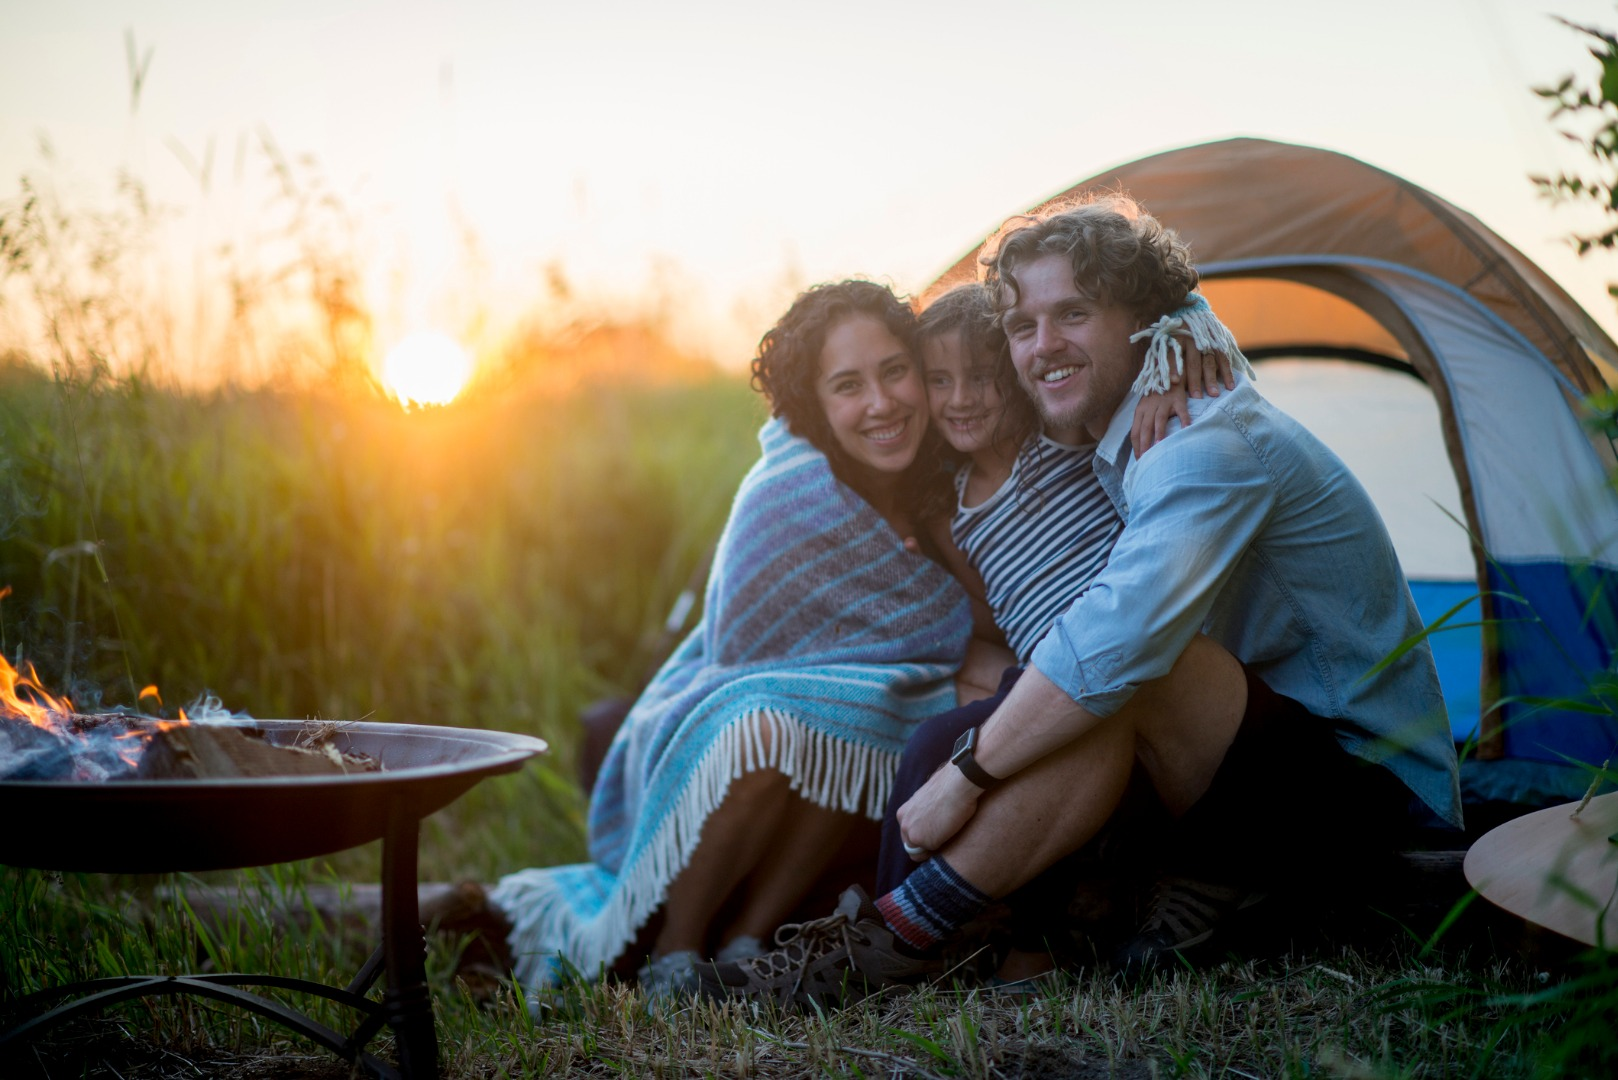 Camping with a child: what you need to know